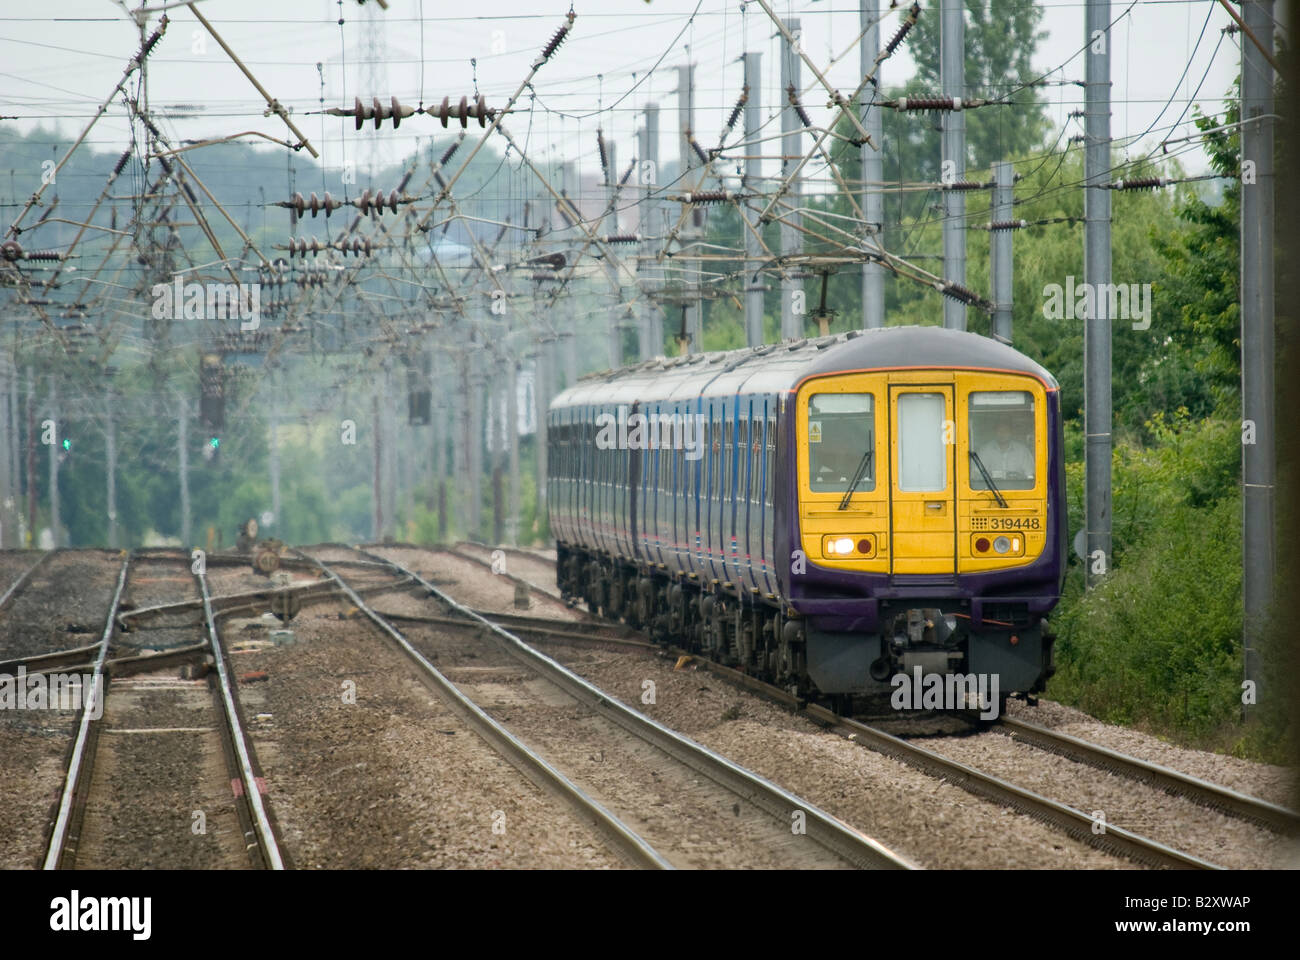 class 319 train in first capital connect livery travelling beneath catenary in the uk Stock Photo